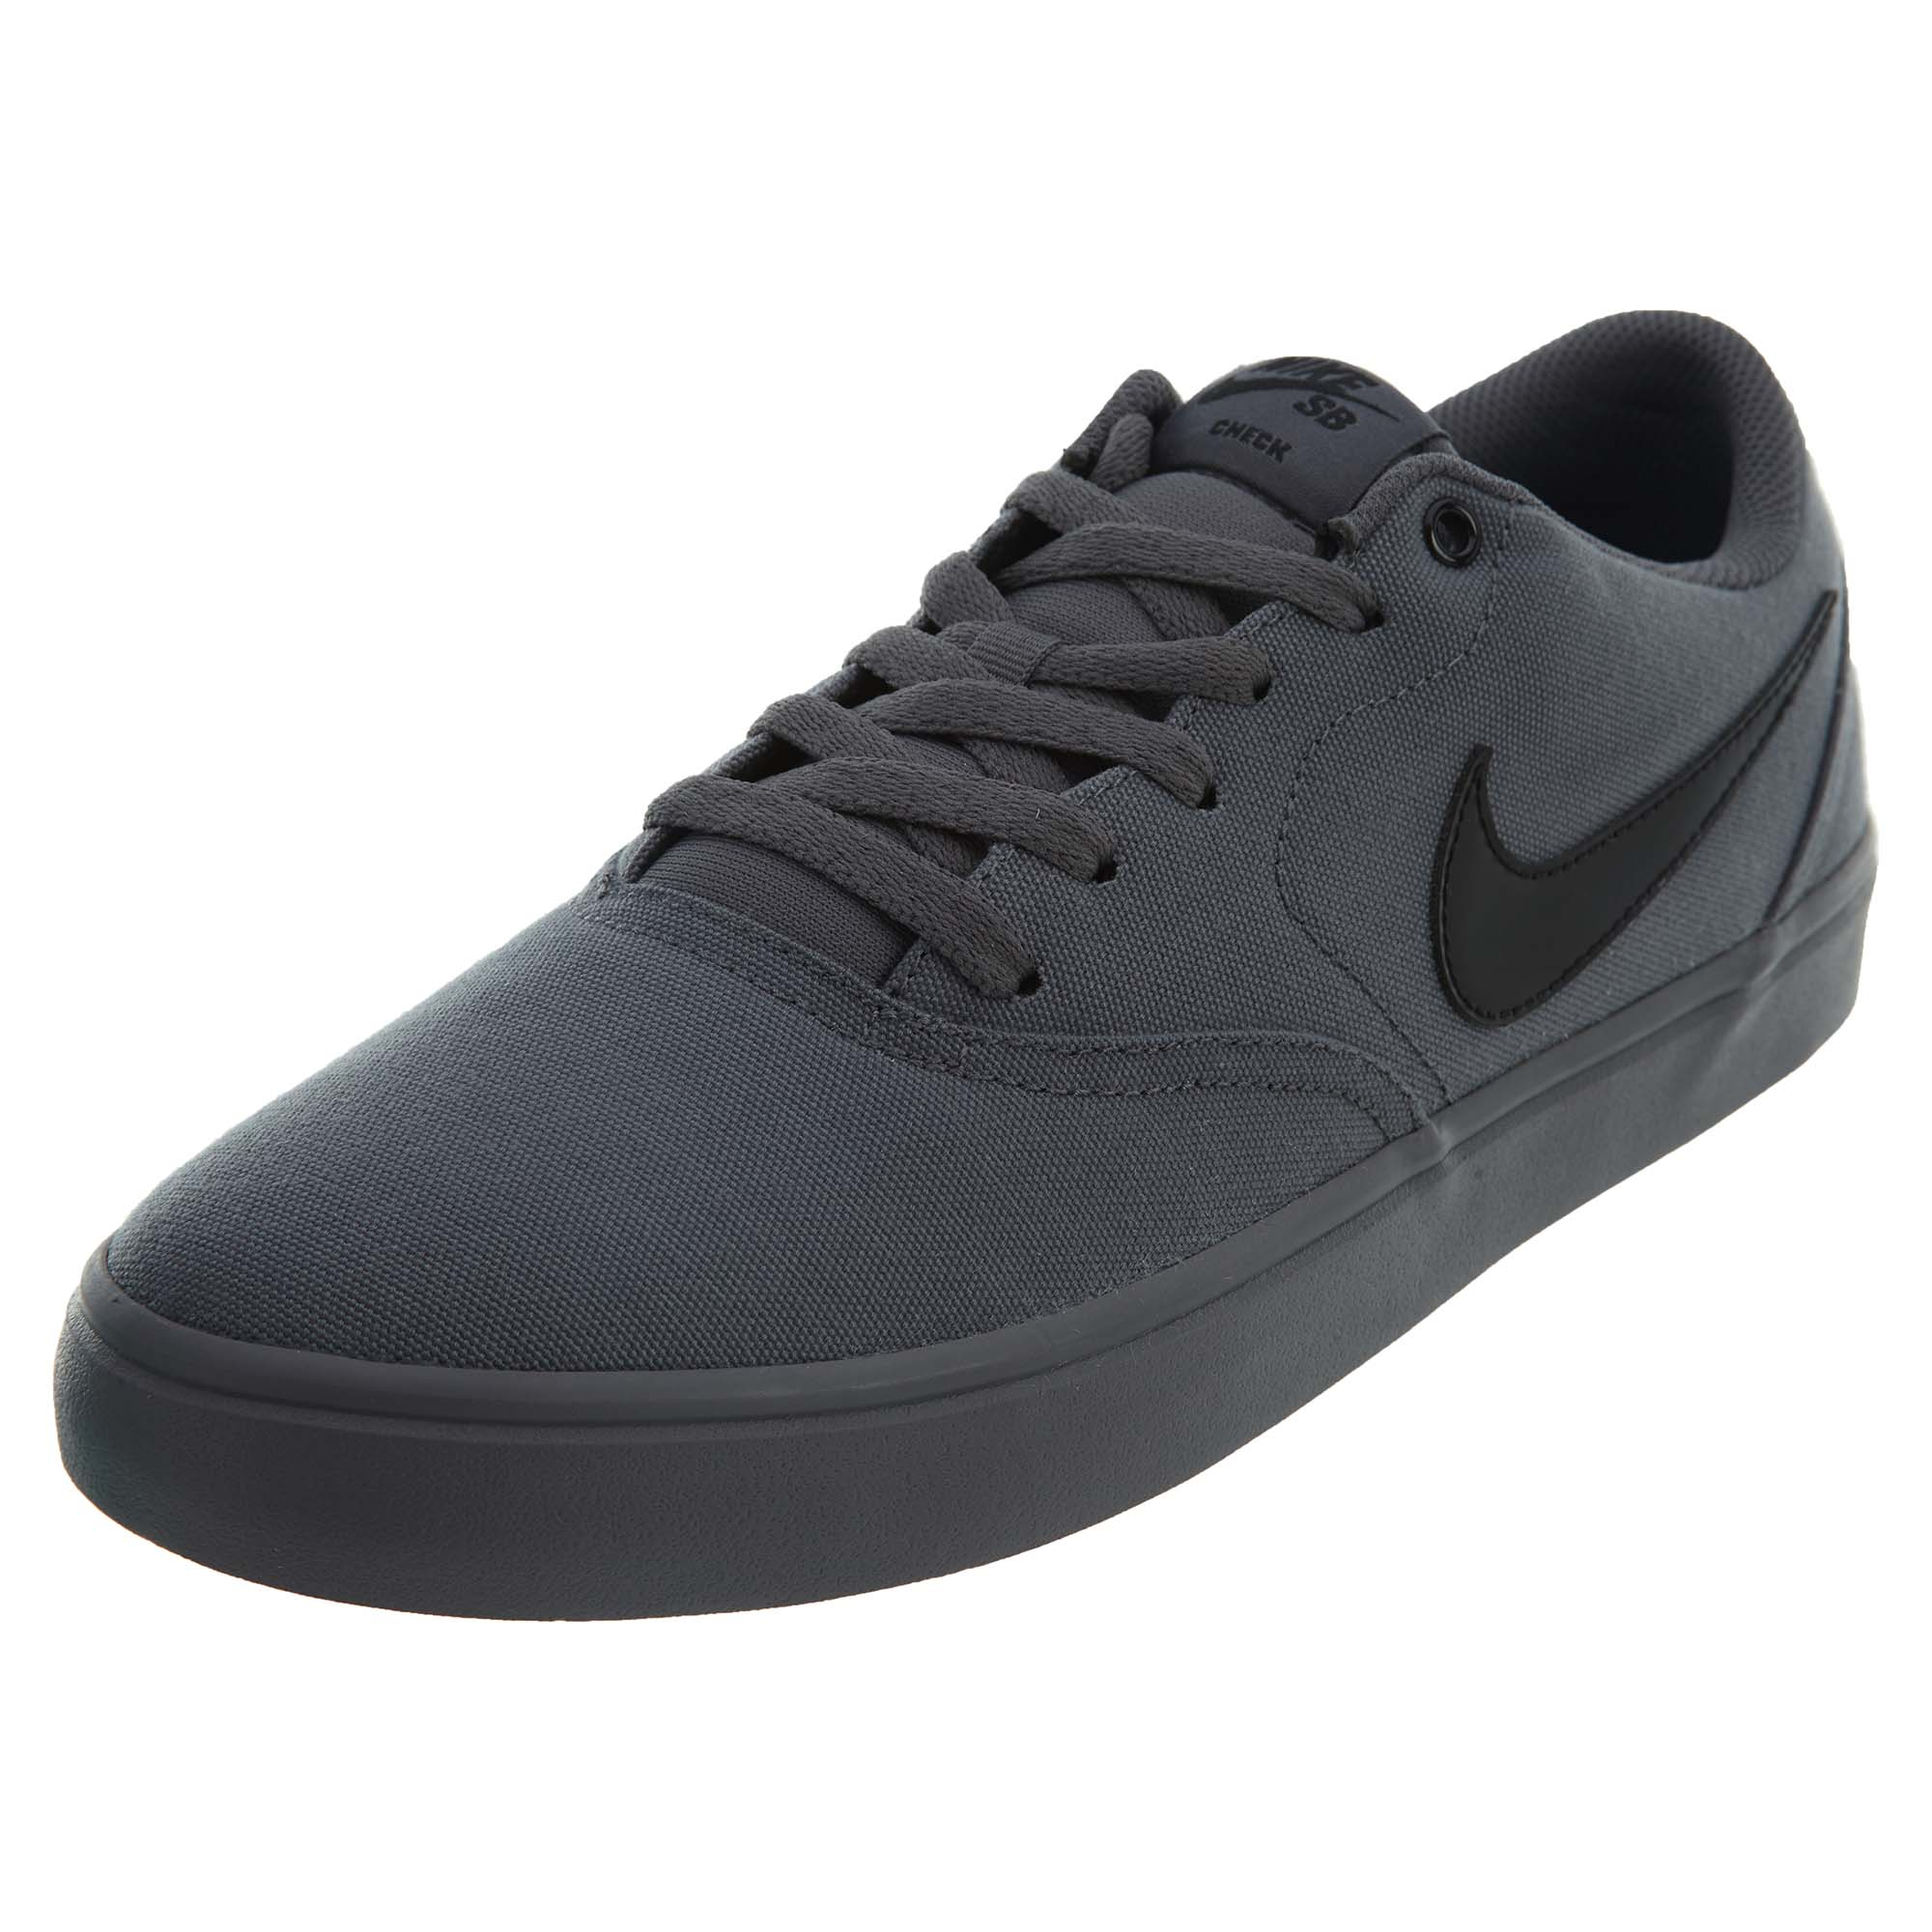 Details about Nike Mens SB Check Solar Cross Training Shoes 843896-008 3cc47234a